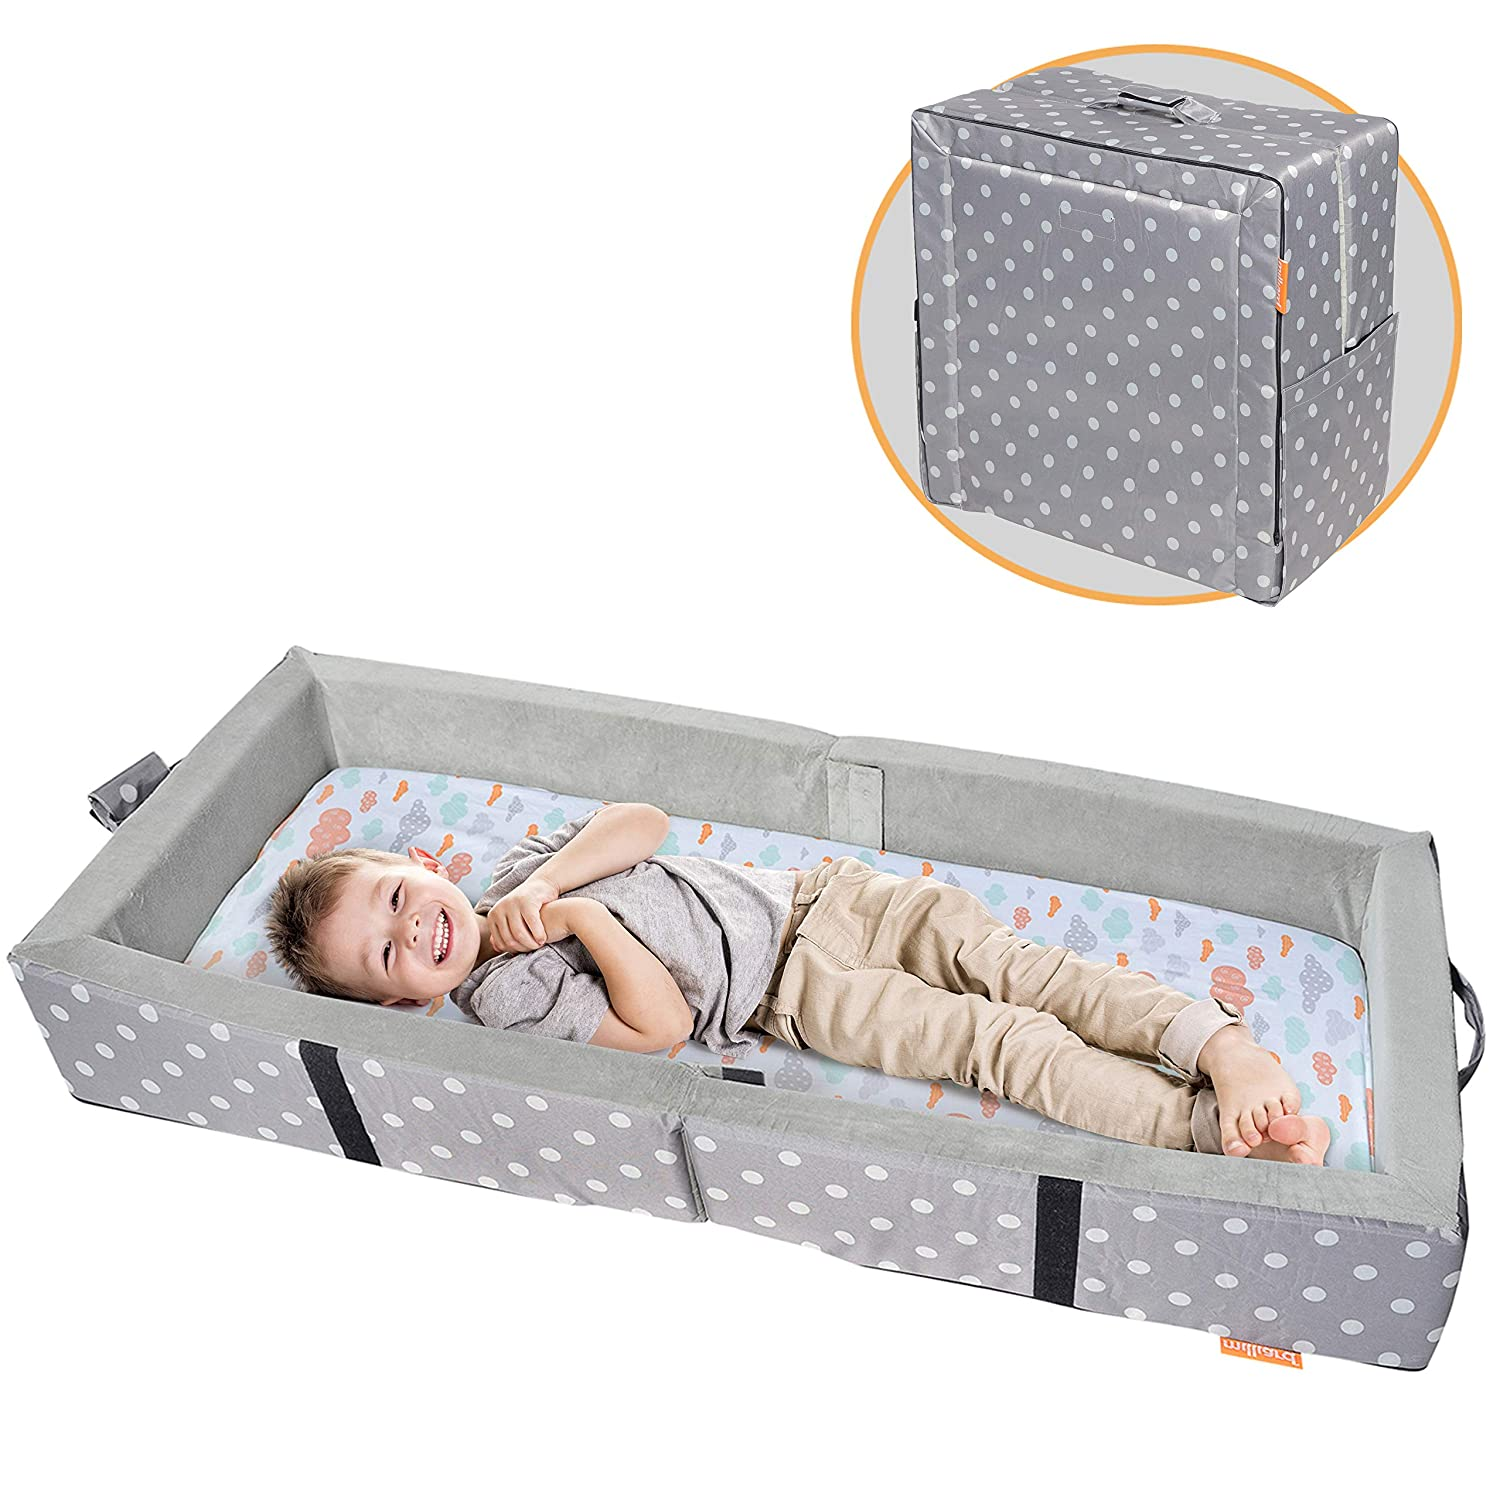 Milliard Portable Toddler Bumper Bed - Travel Bed for Toddler